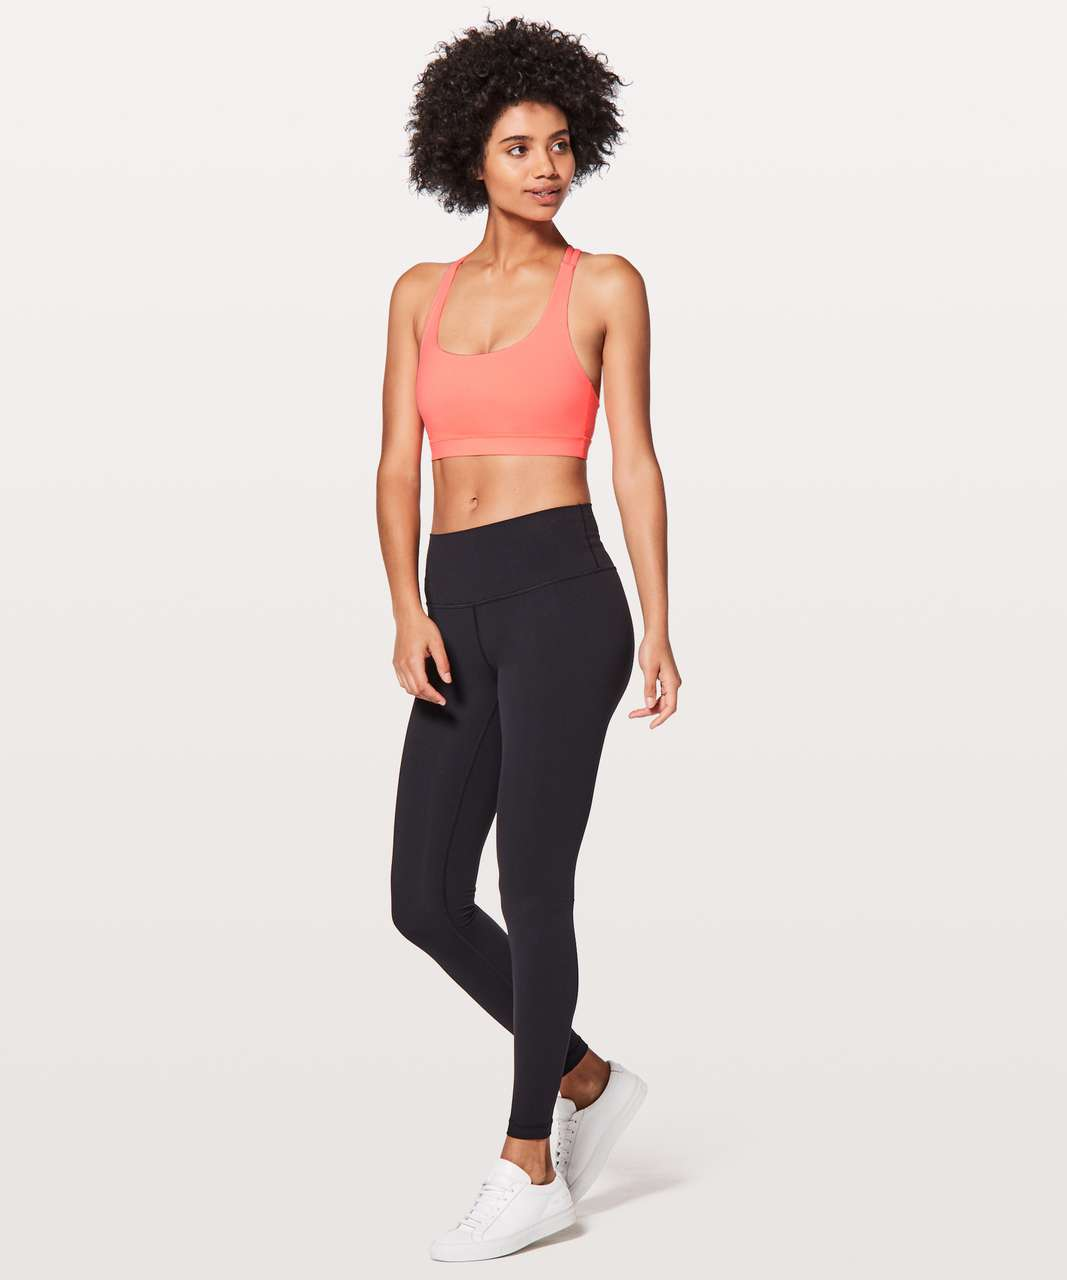 Lululemon Energy Bra - Sunset